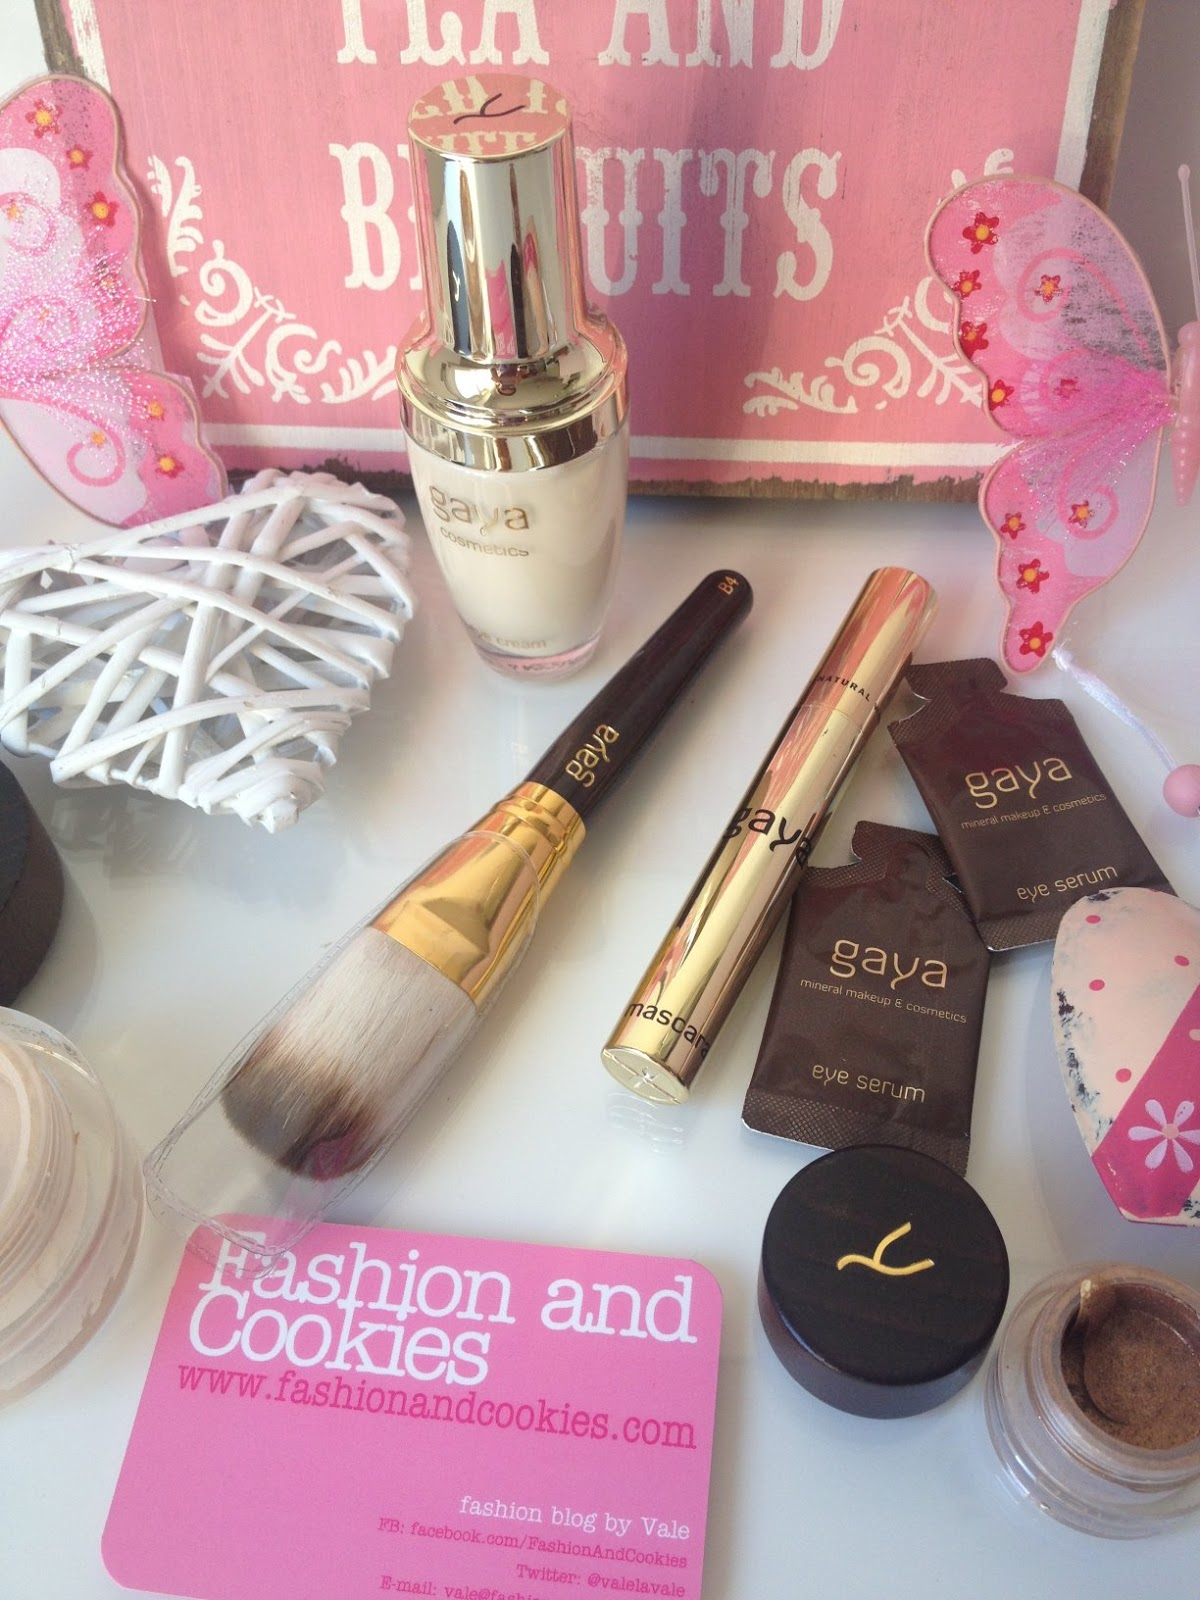 Gaya cosmetics review and haul on Fashion and Cookies beauty blog